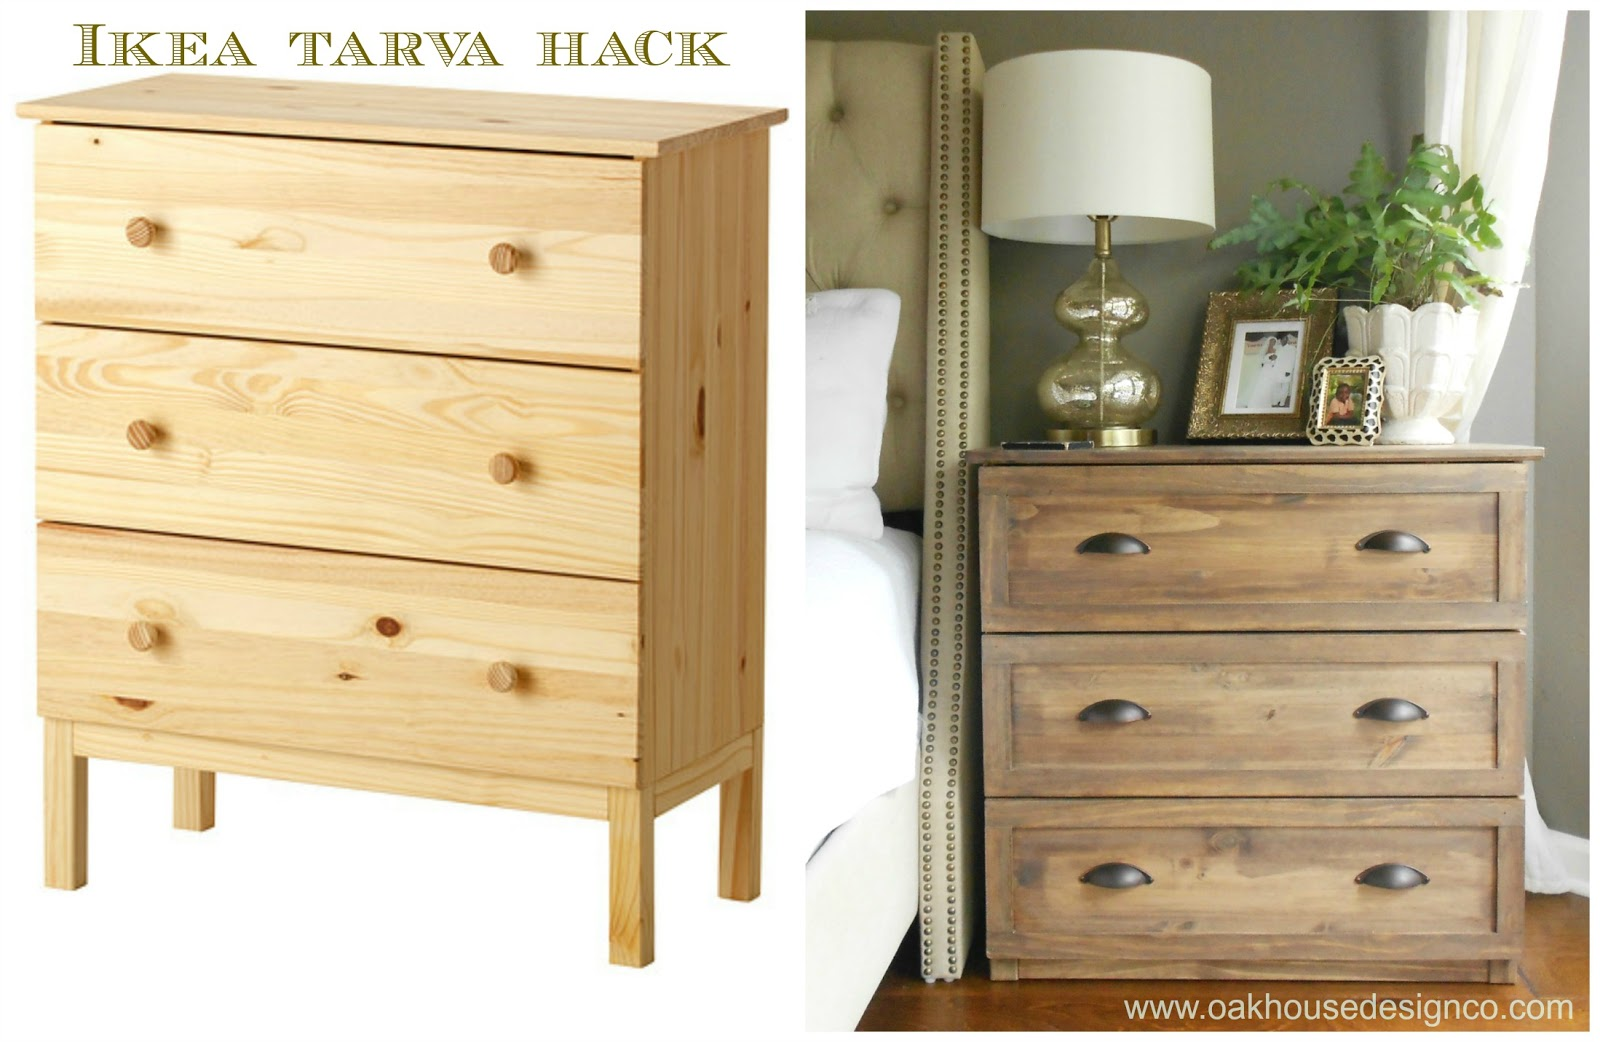 Old Ikea Nightstands The New Nightstands-An Ikea Tarva Hack